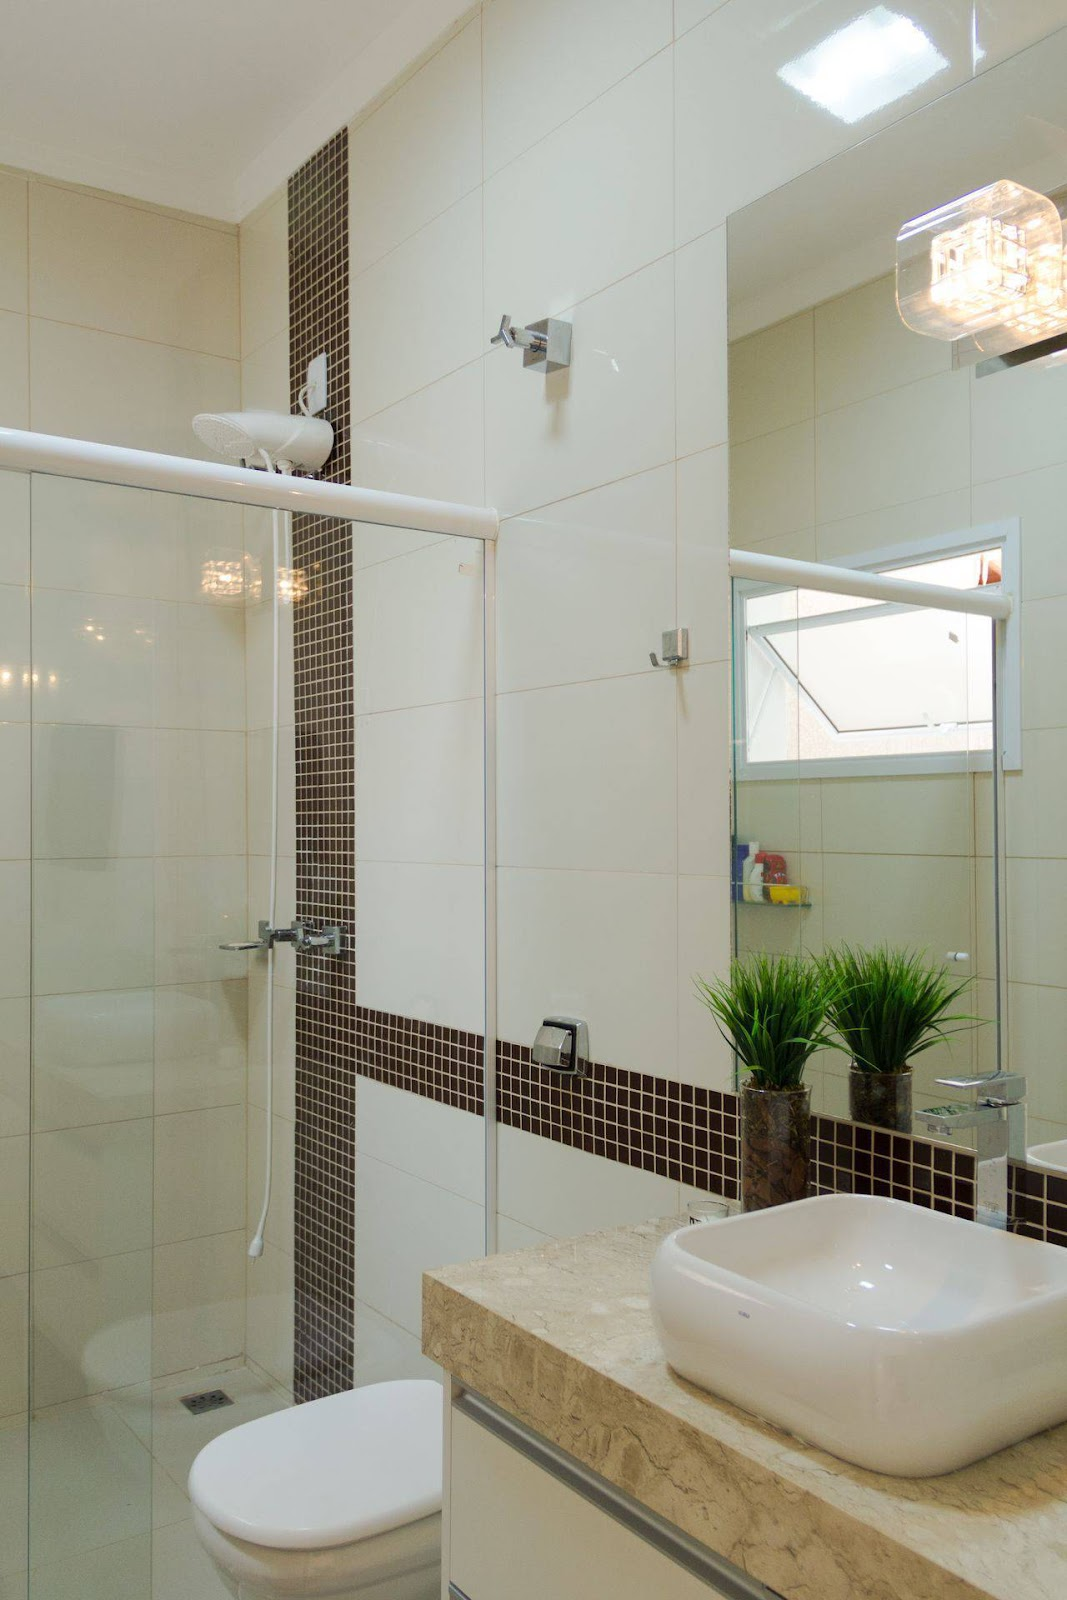 image of a complete bathroom, it is possible to identify sink, toilet and shower.